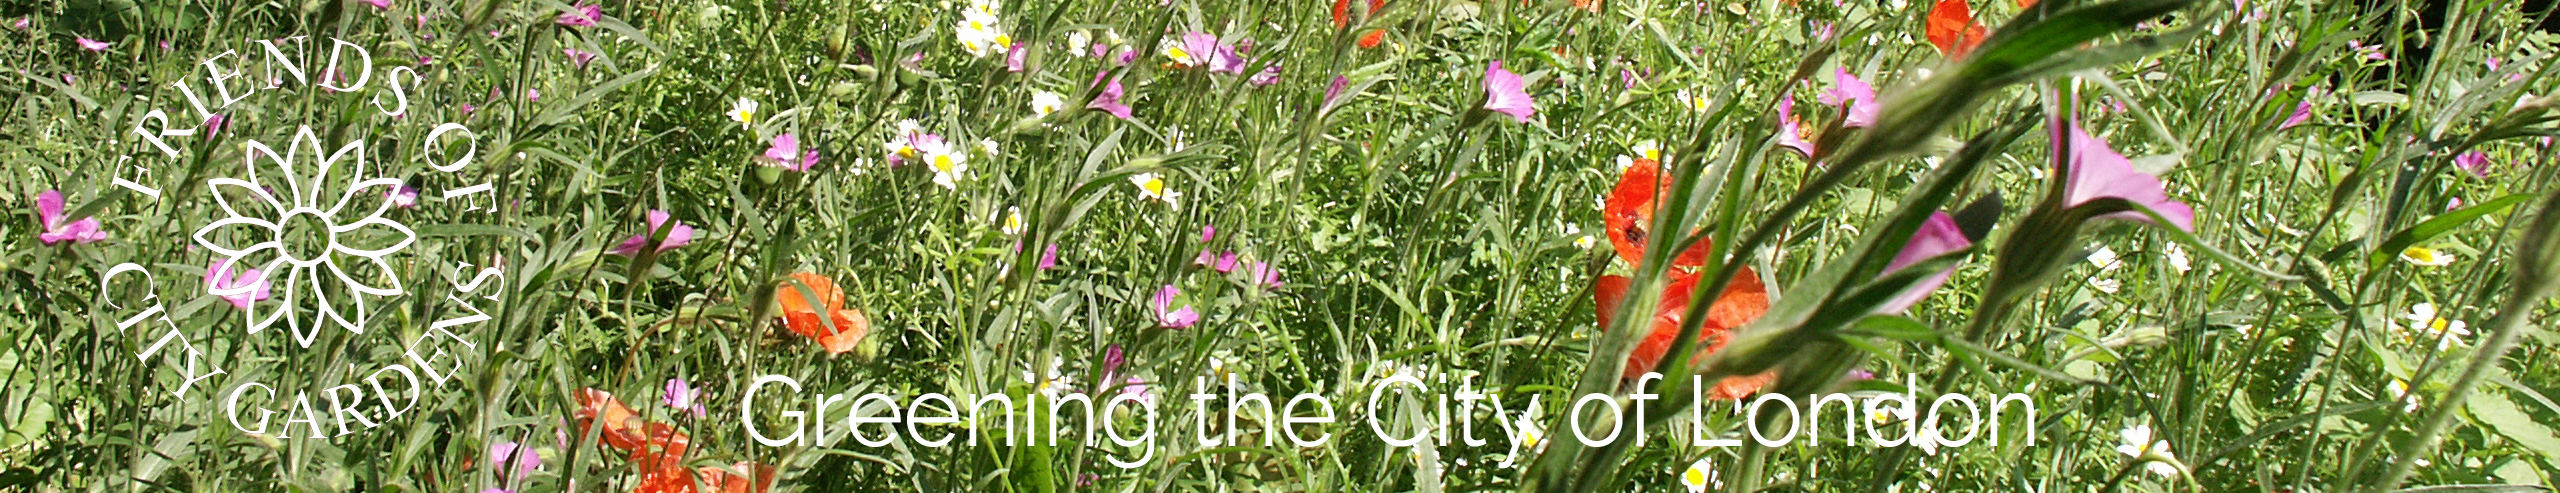 Friends of City Gardens